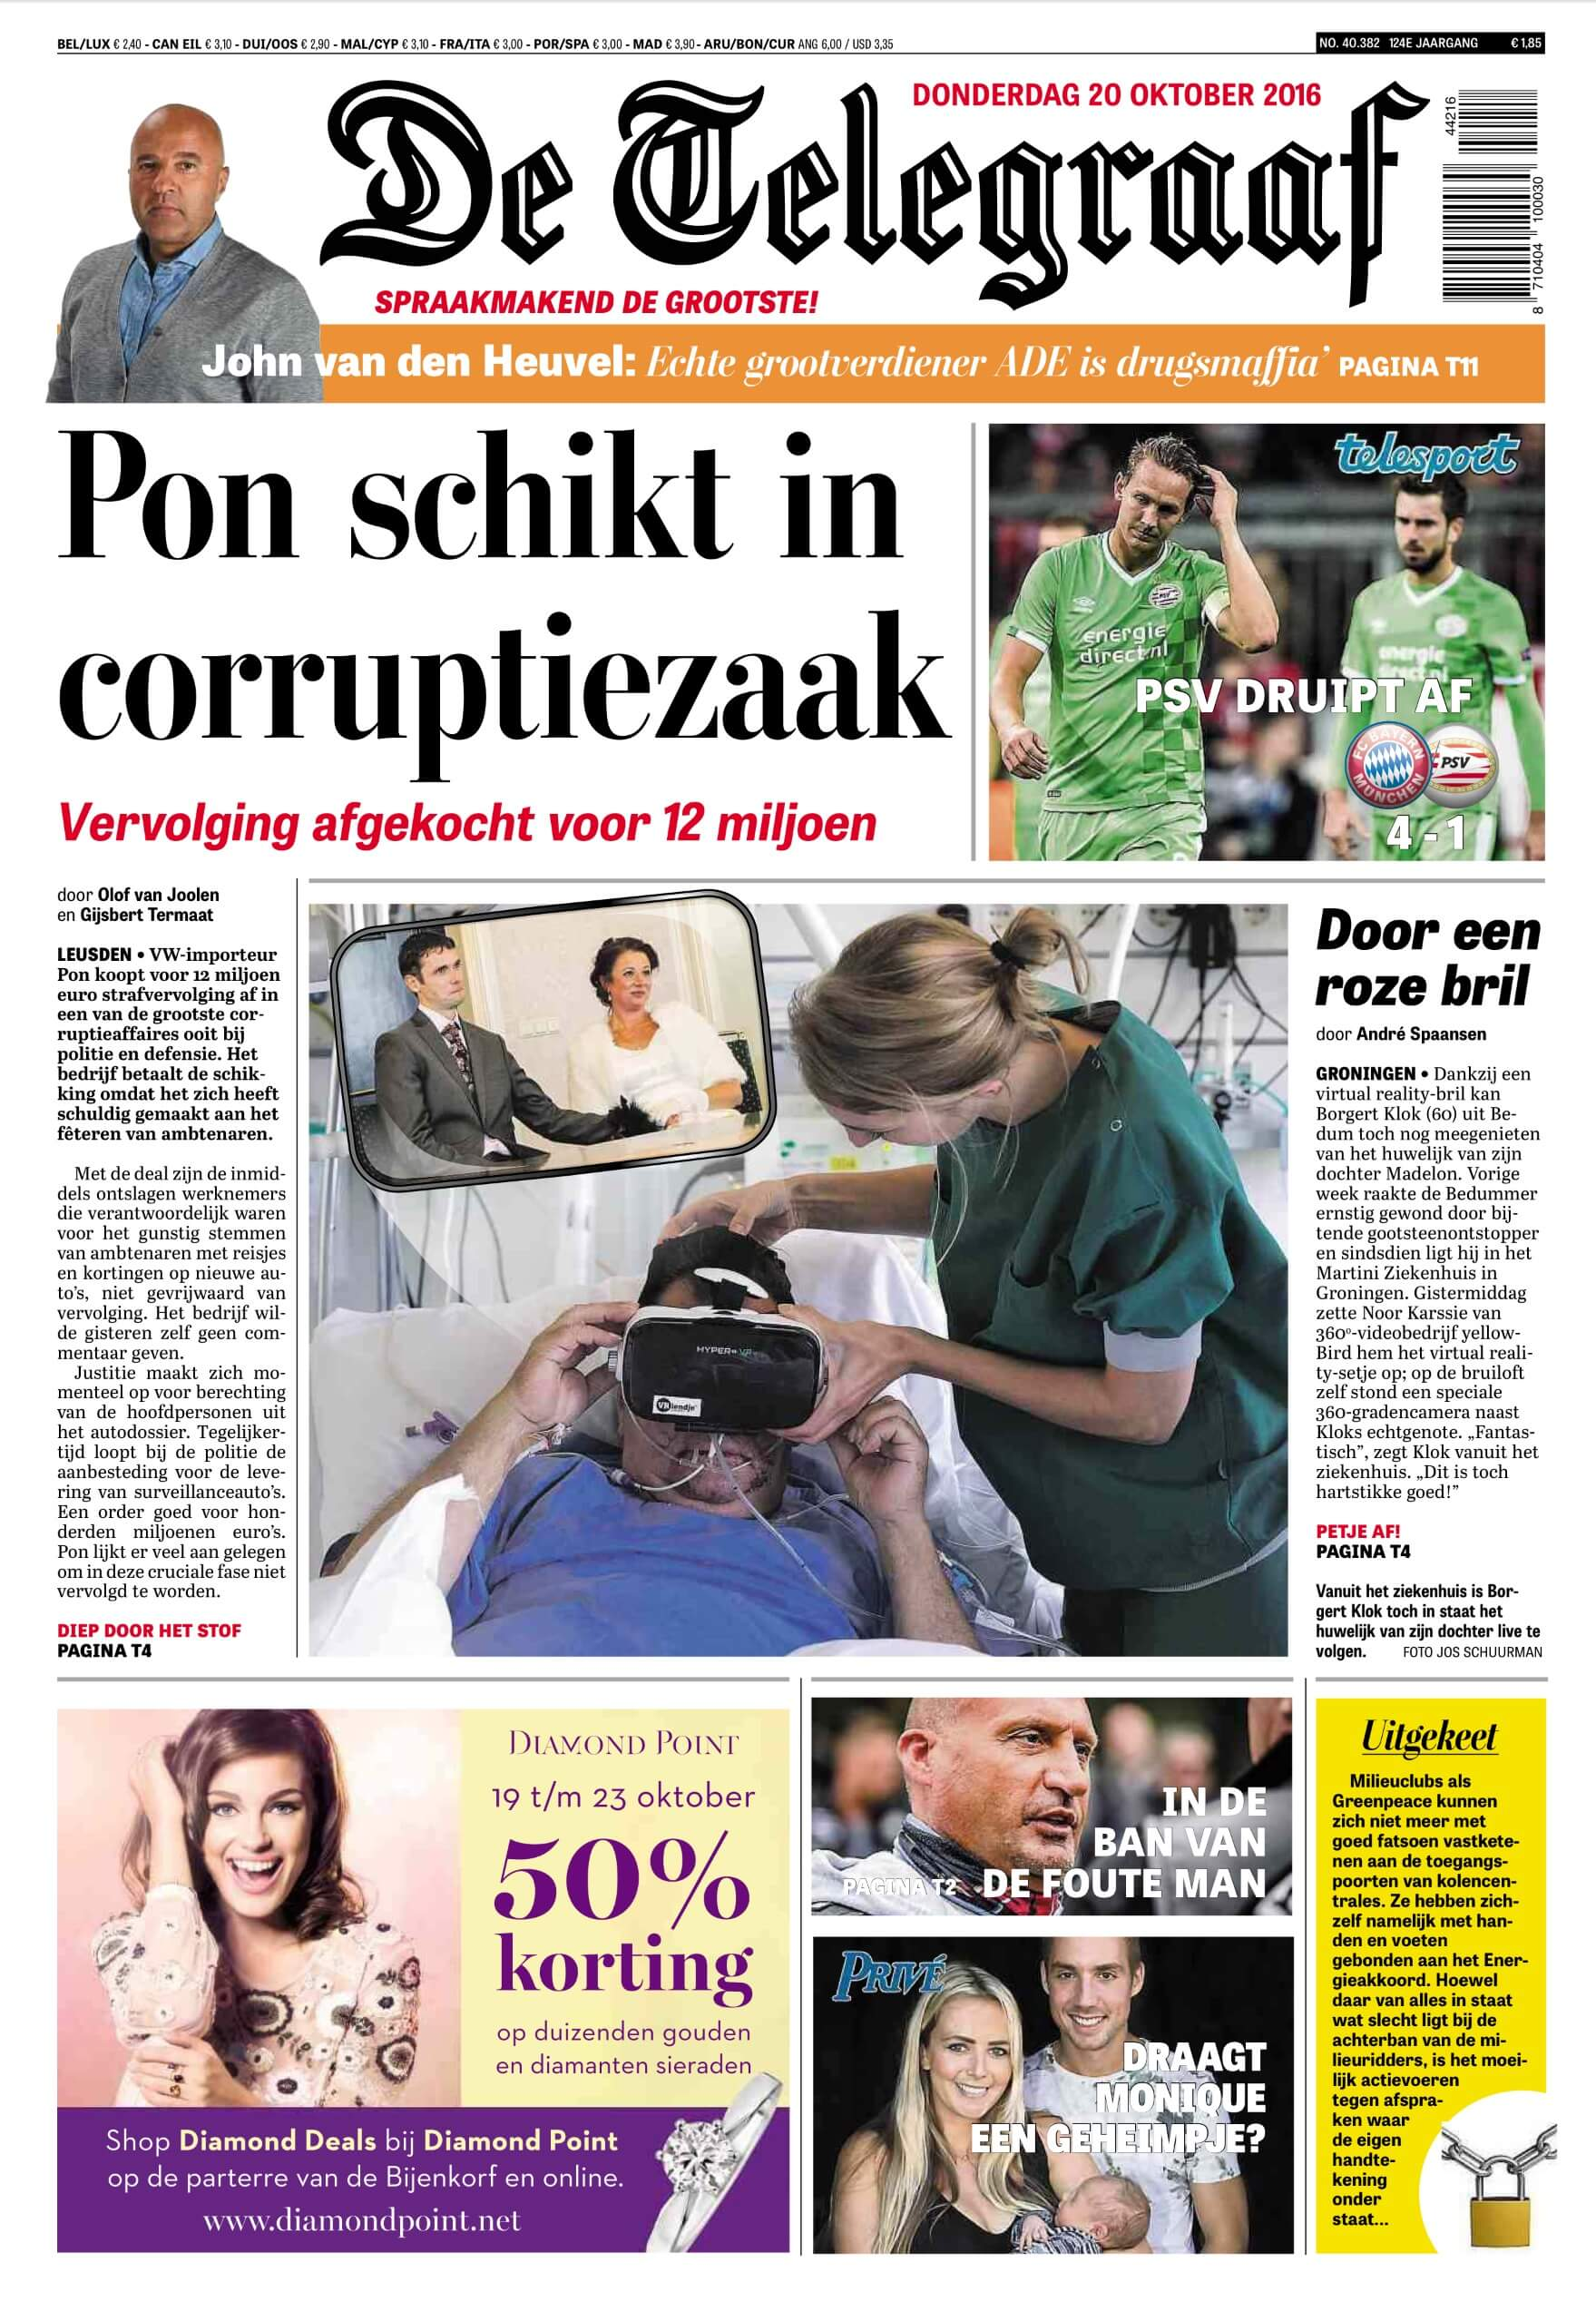 HyperVR on the front page of Netherlands newspaper, De Telegraaf